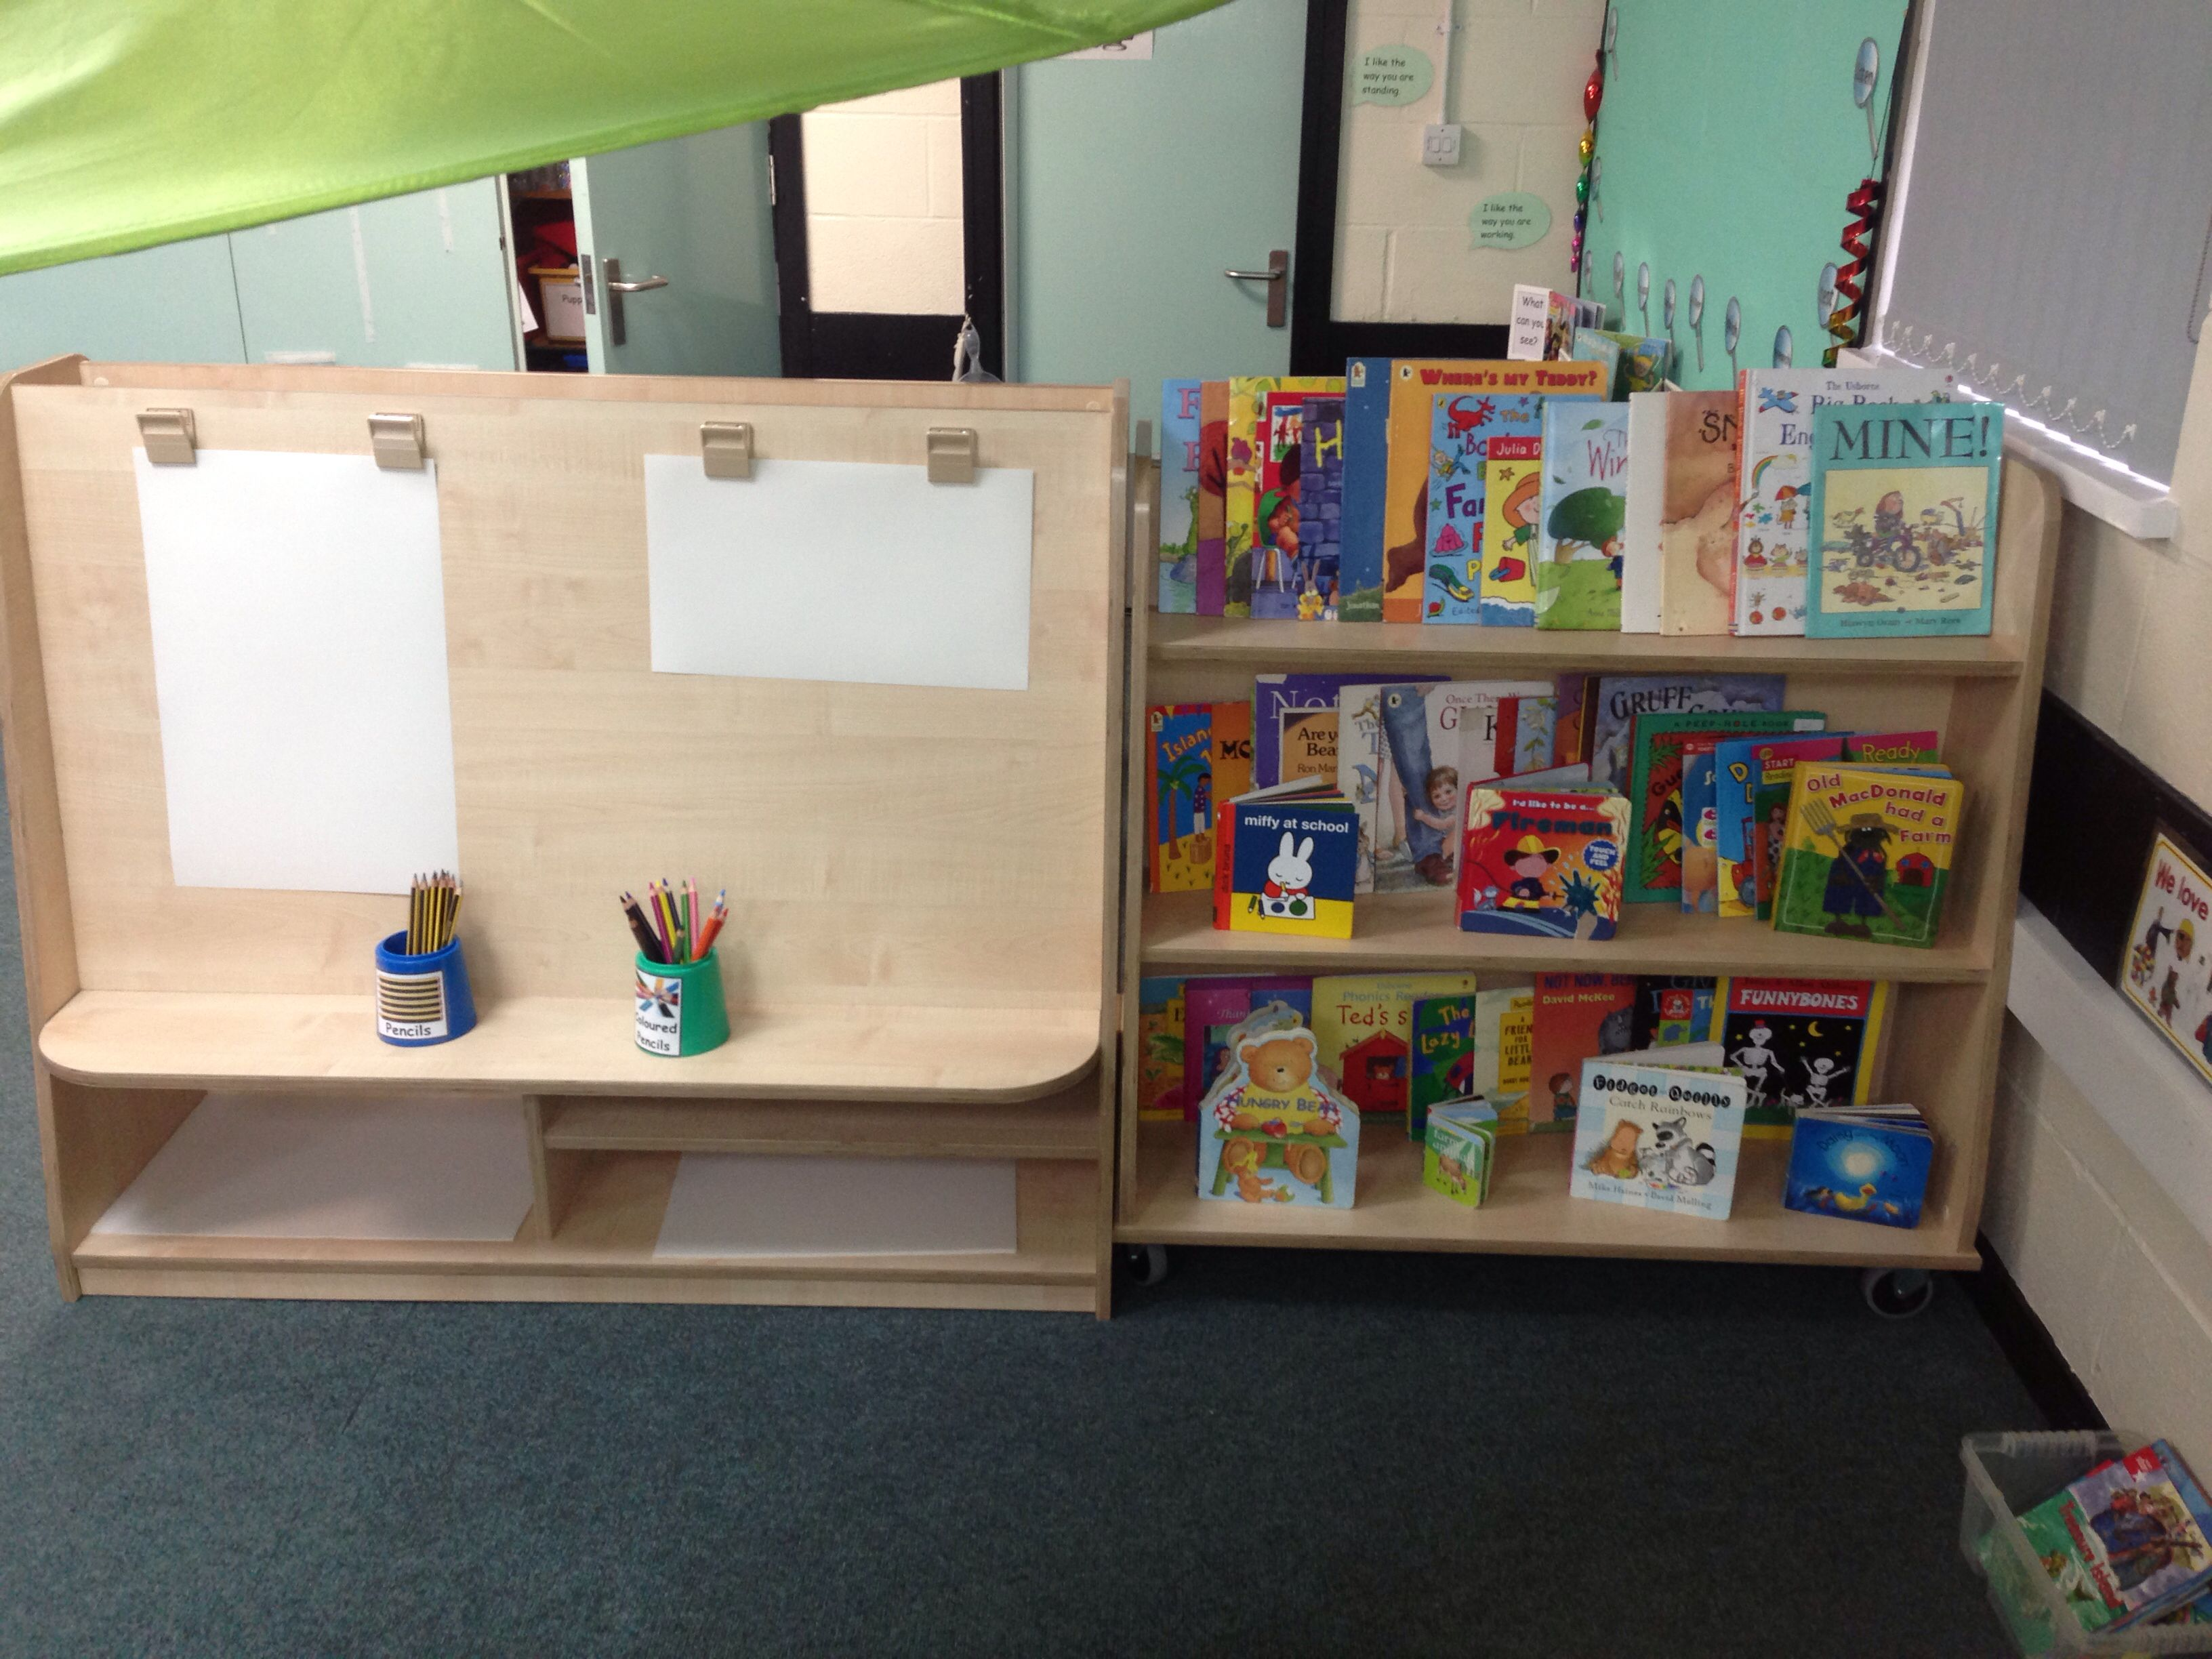 Reception classroom sketching easel and reading area